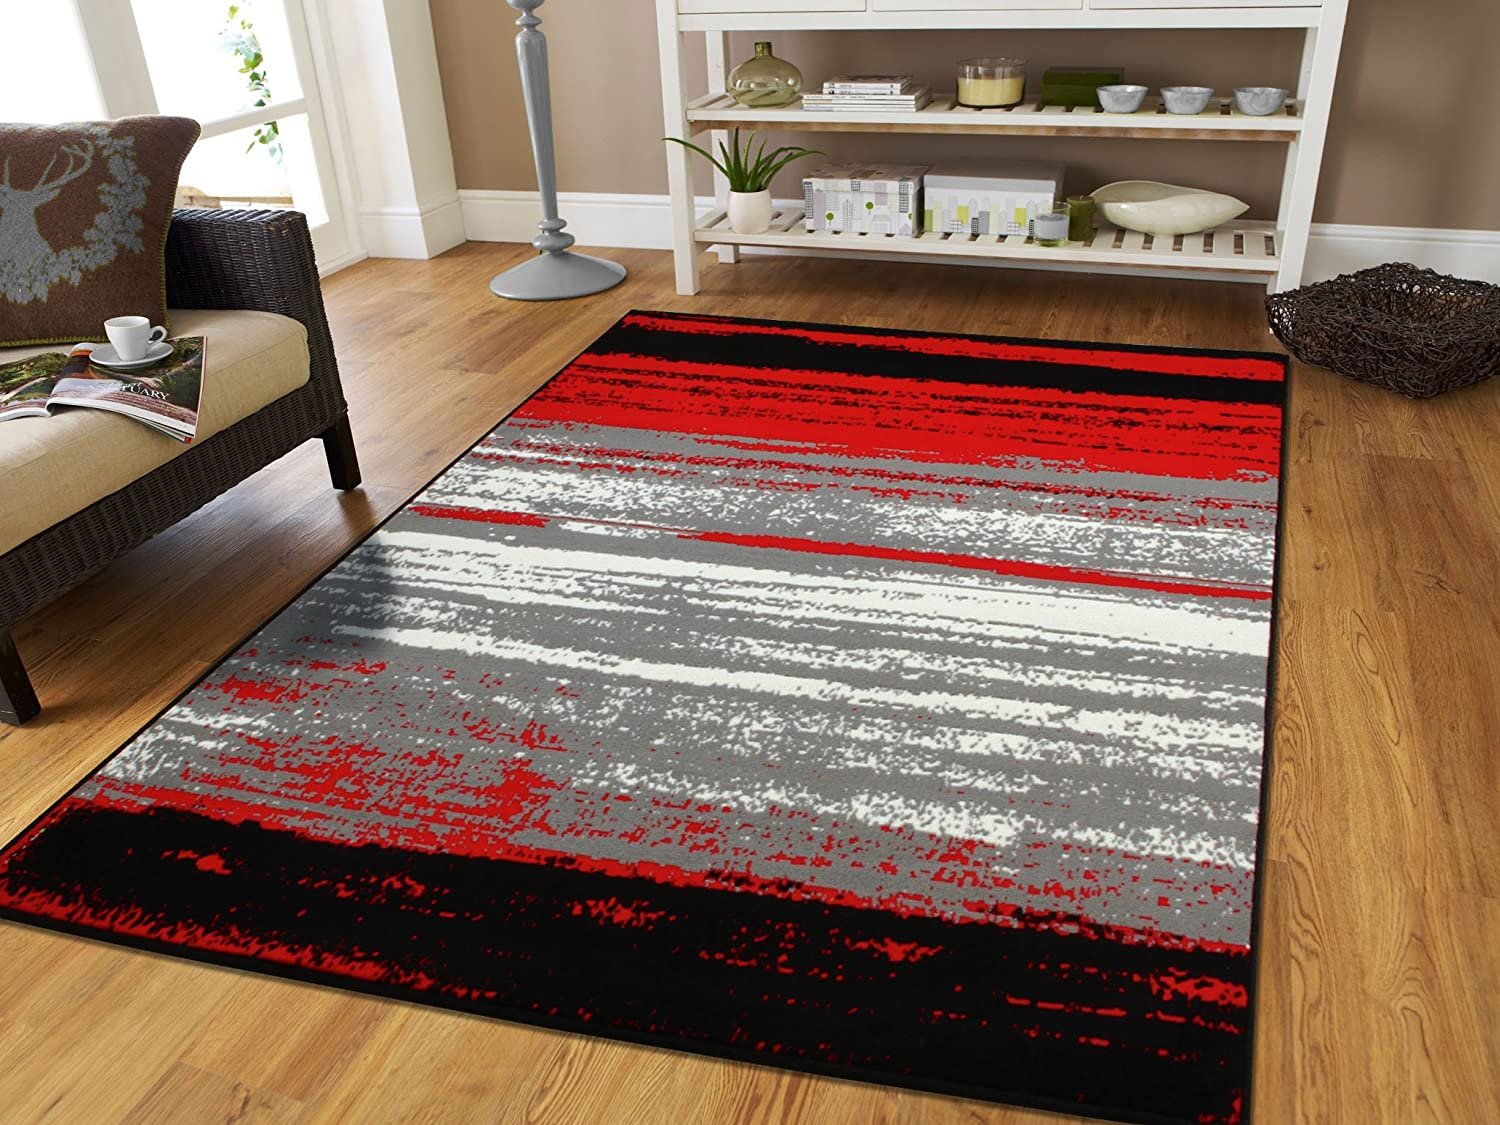 Red Contemporary Rugs for Living Room Bathroom Entery Carpet Reds Black  Grey White 2x3 Carpets for Bedrooms, 2x3 Rug